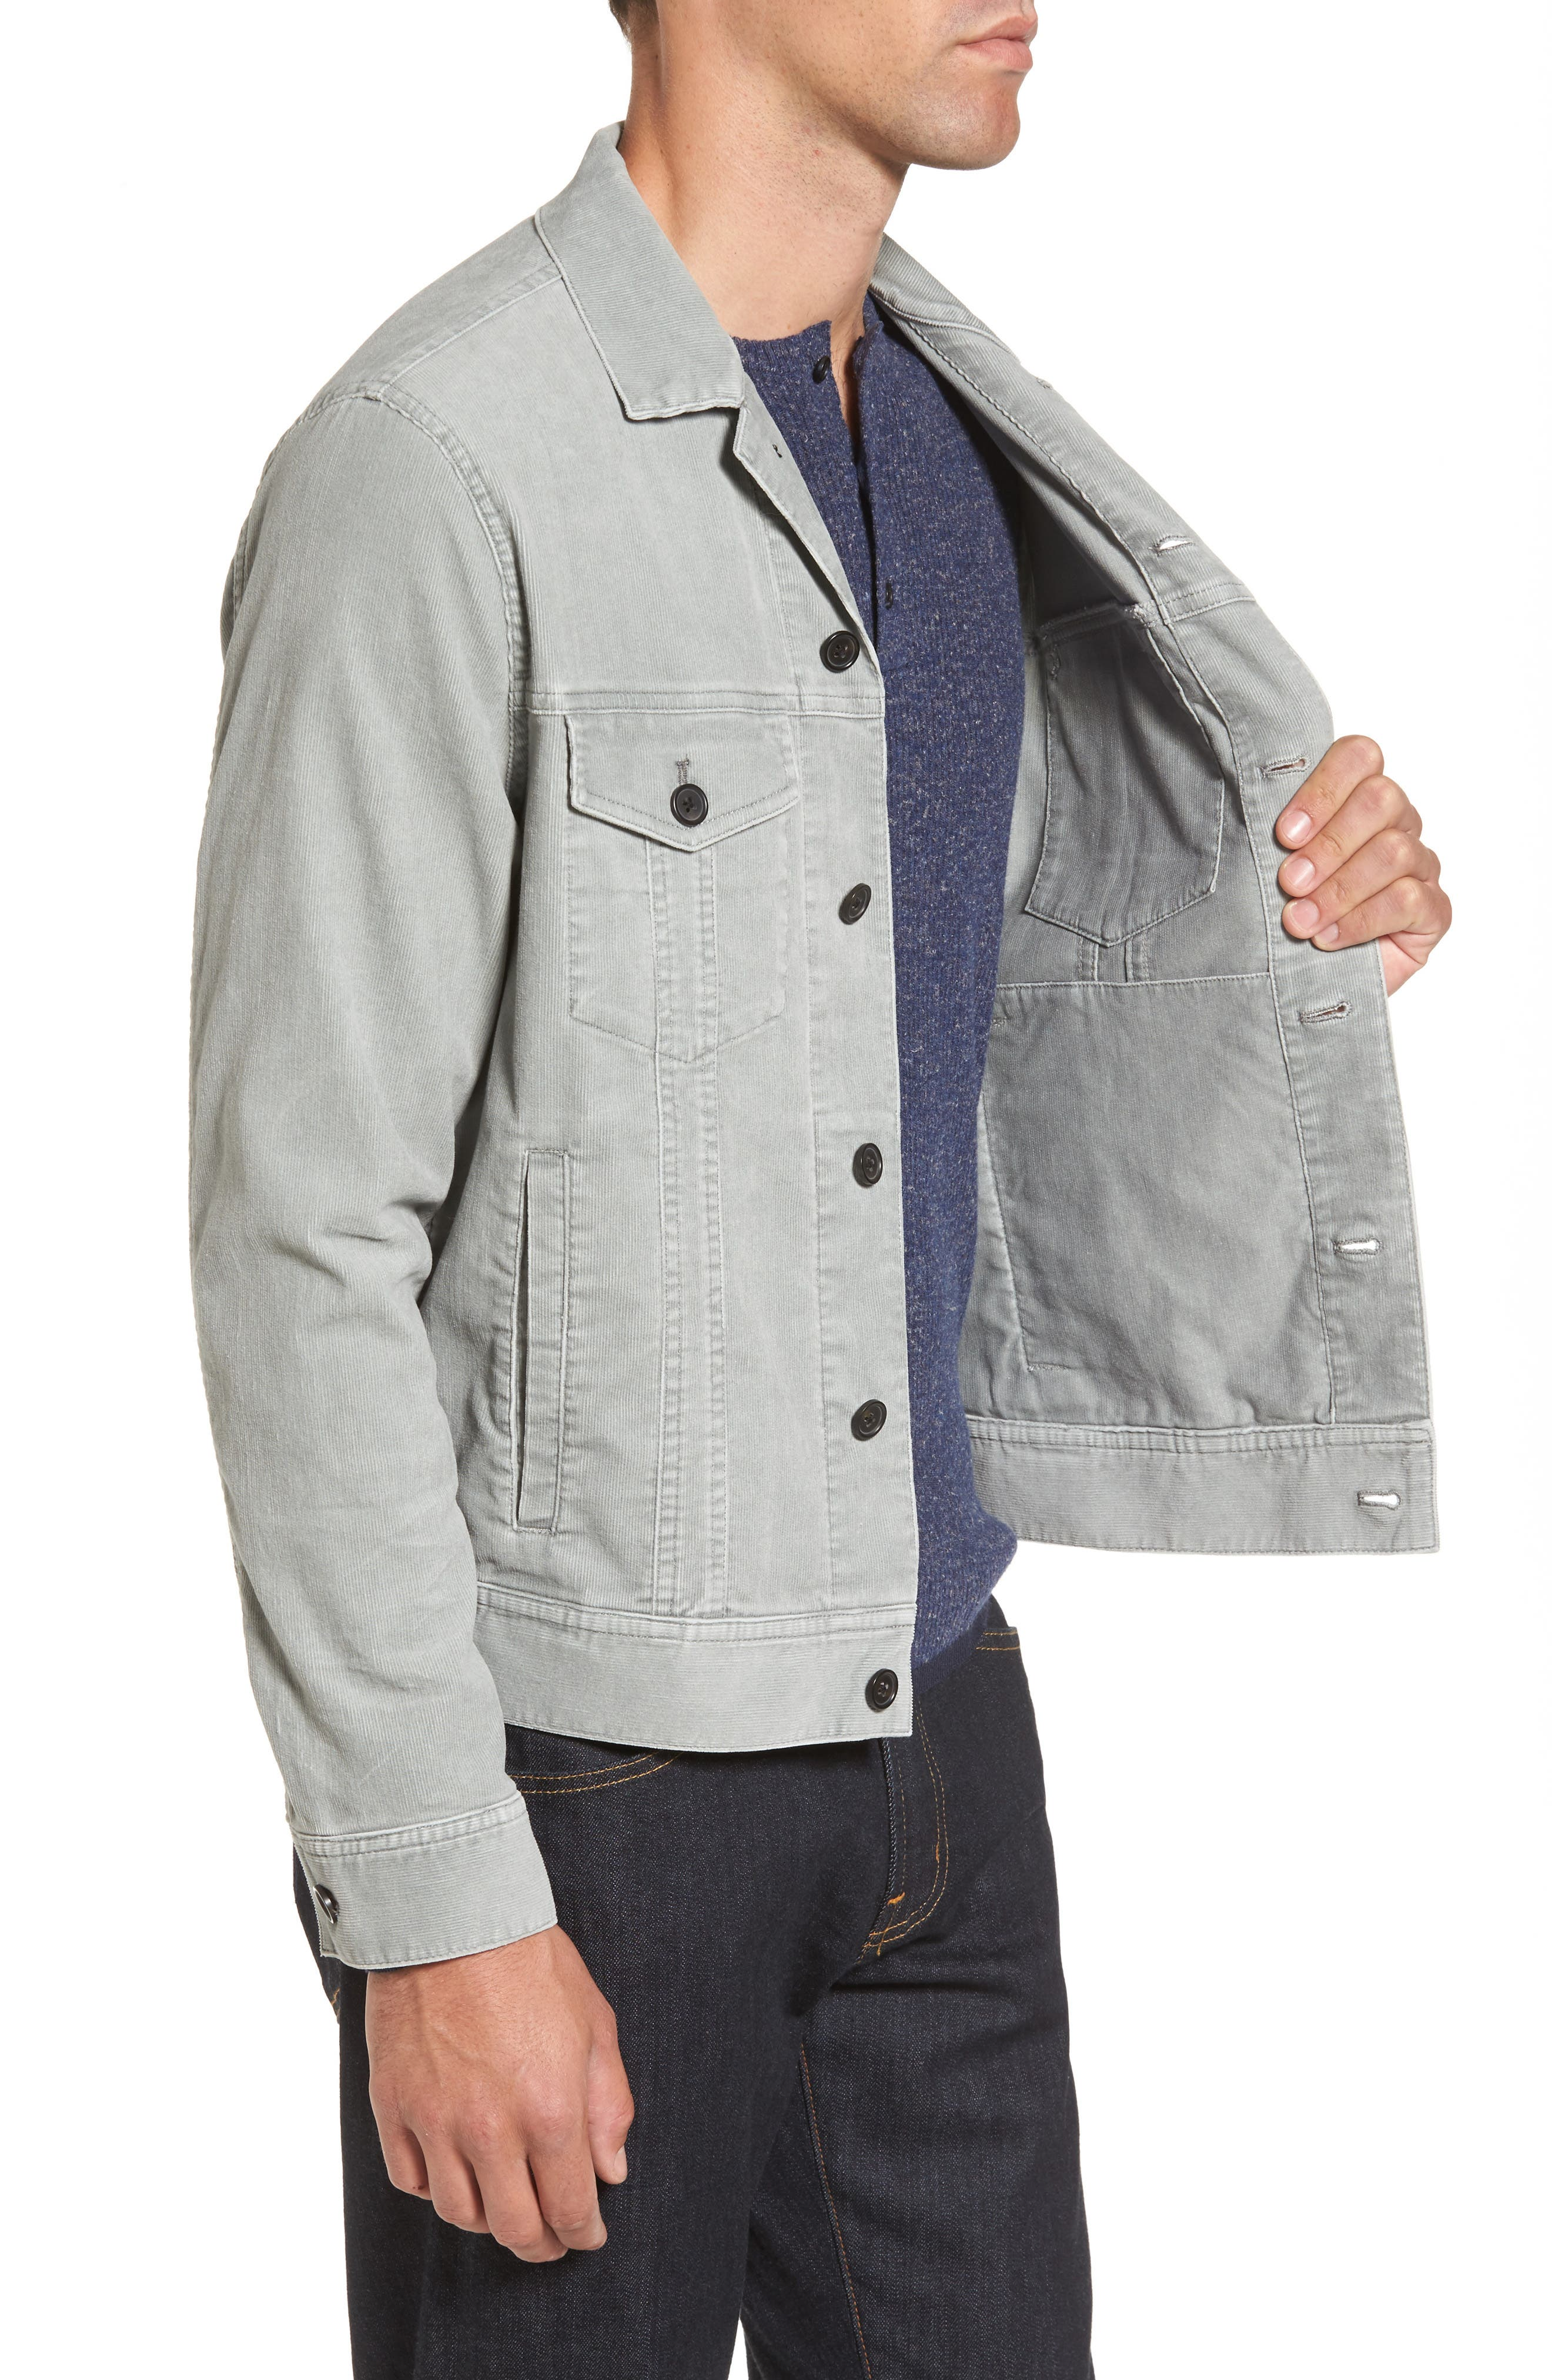 Pigment Dyed Stretch Corduroy Jacket,                             Alternate thumbnail 3, color,                             340